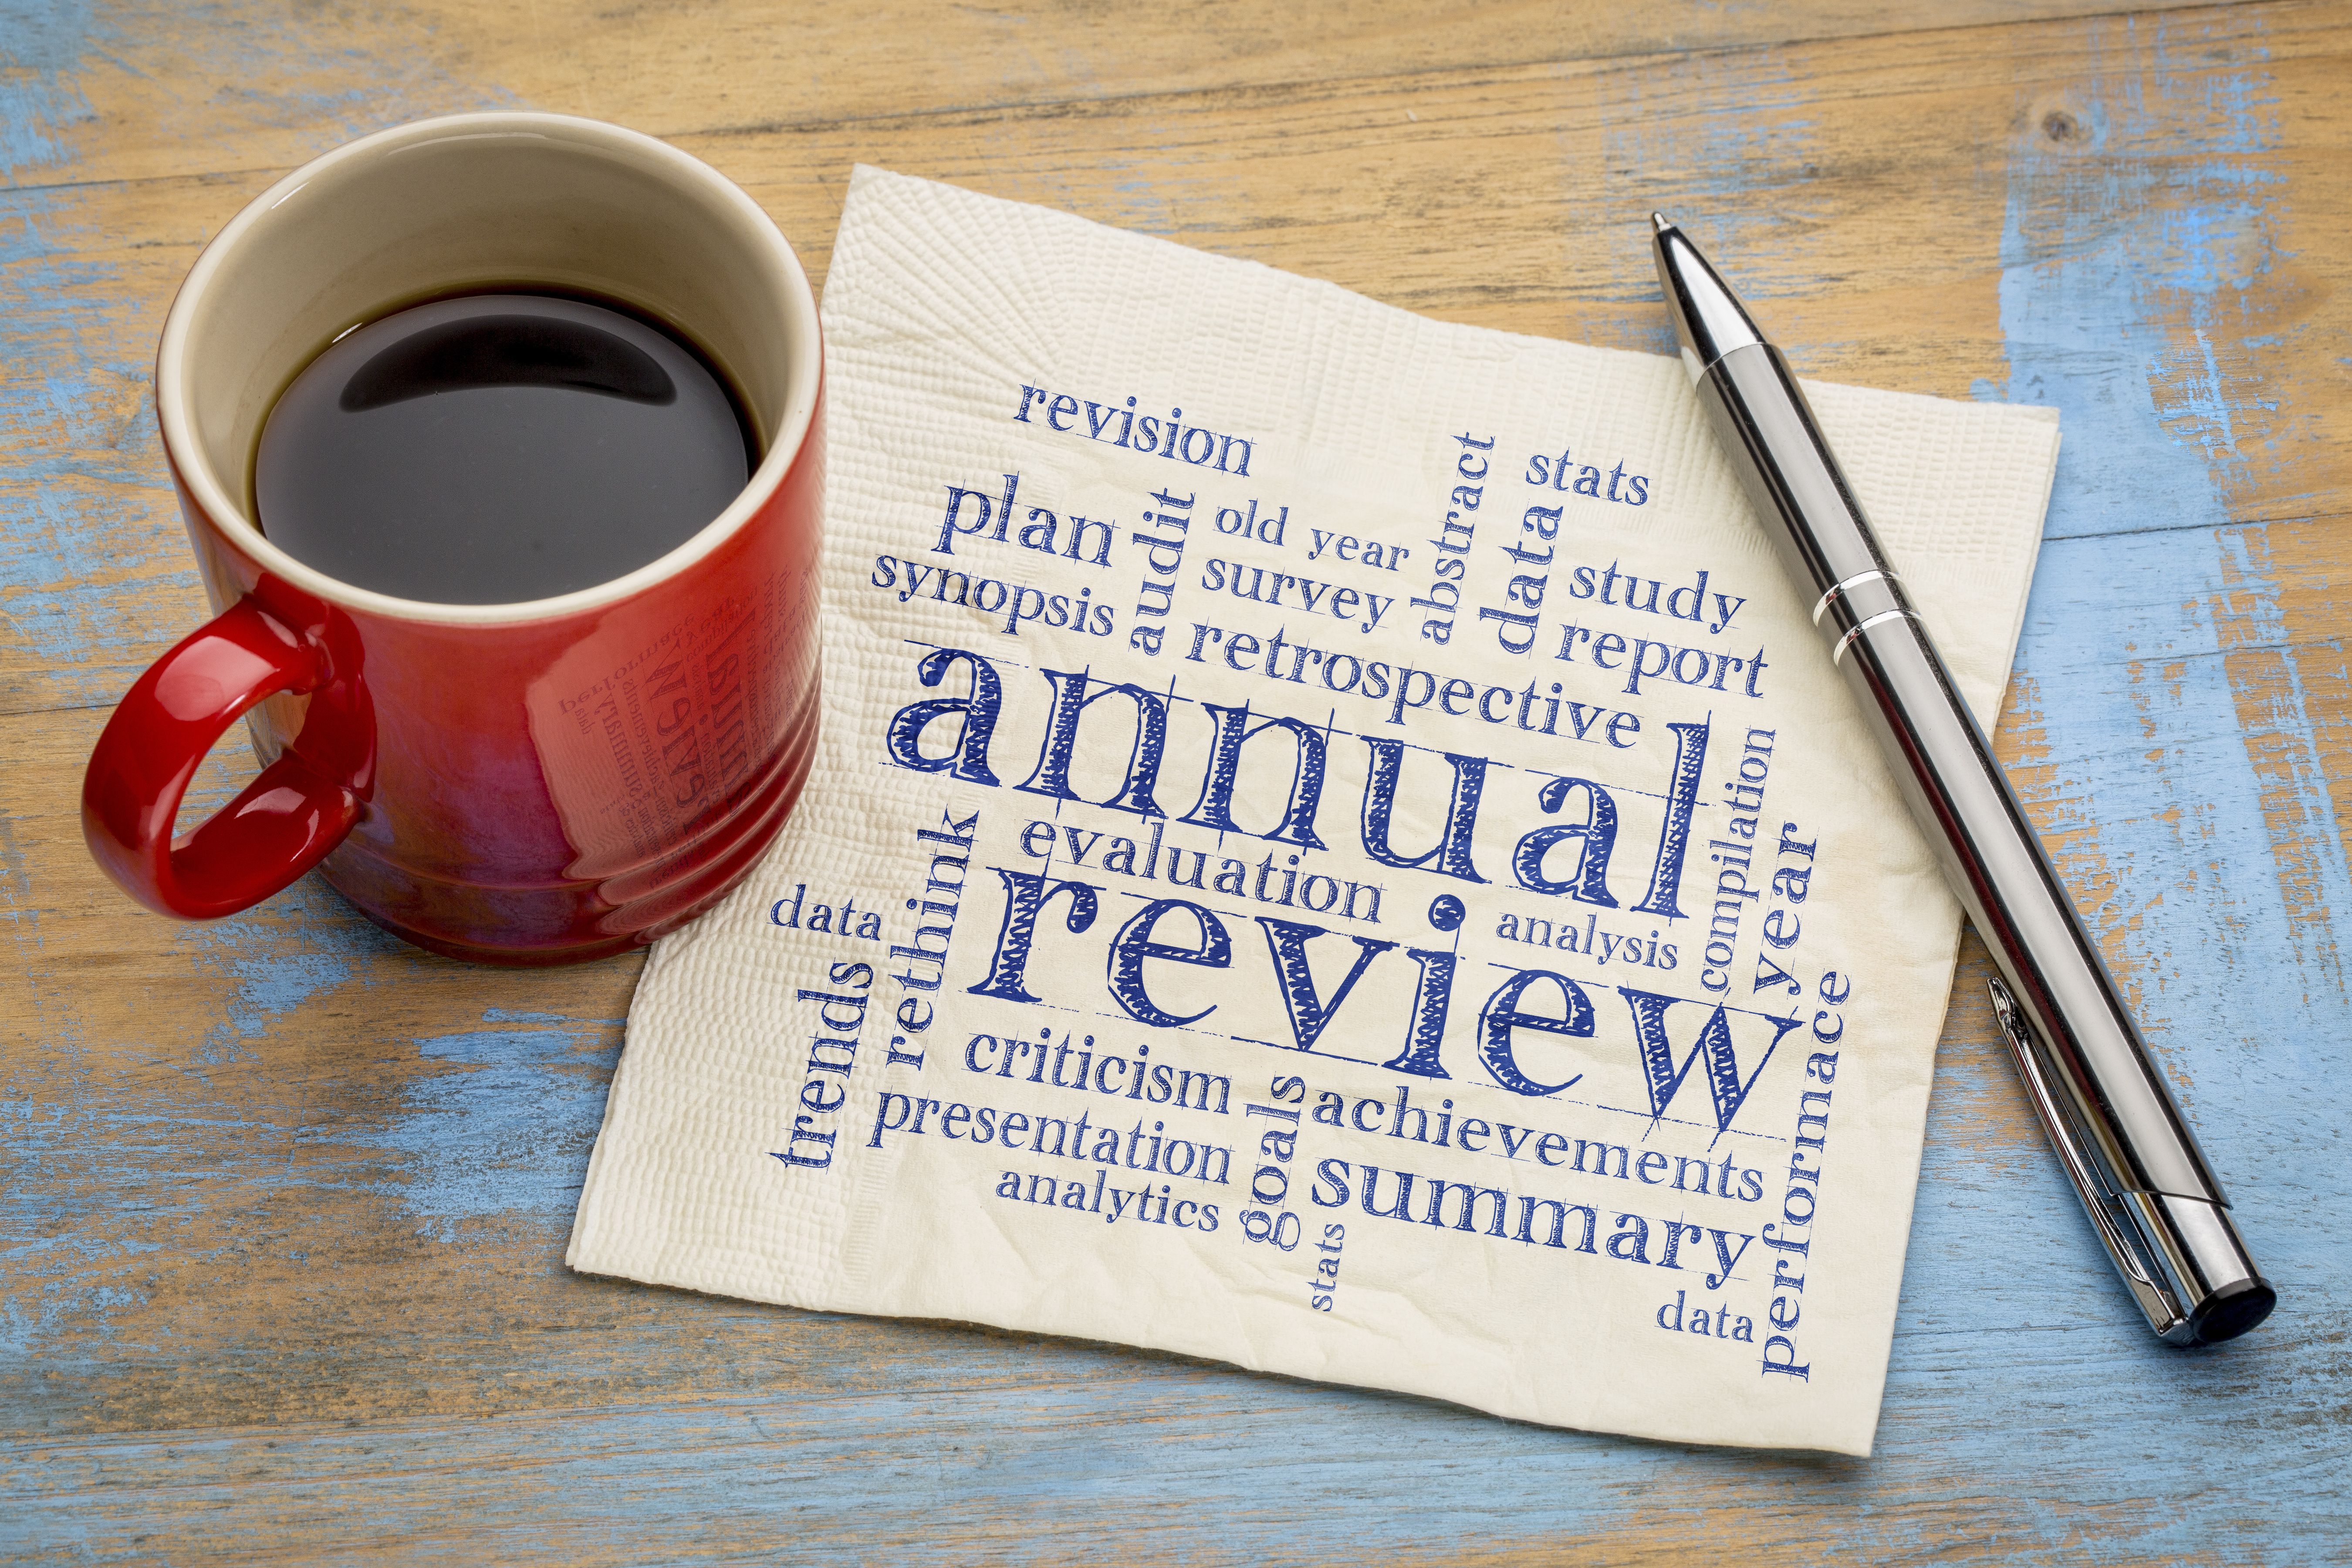 Annual Review of your IVA